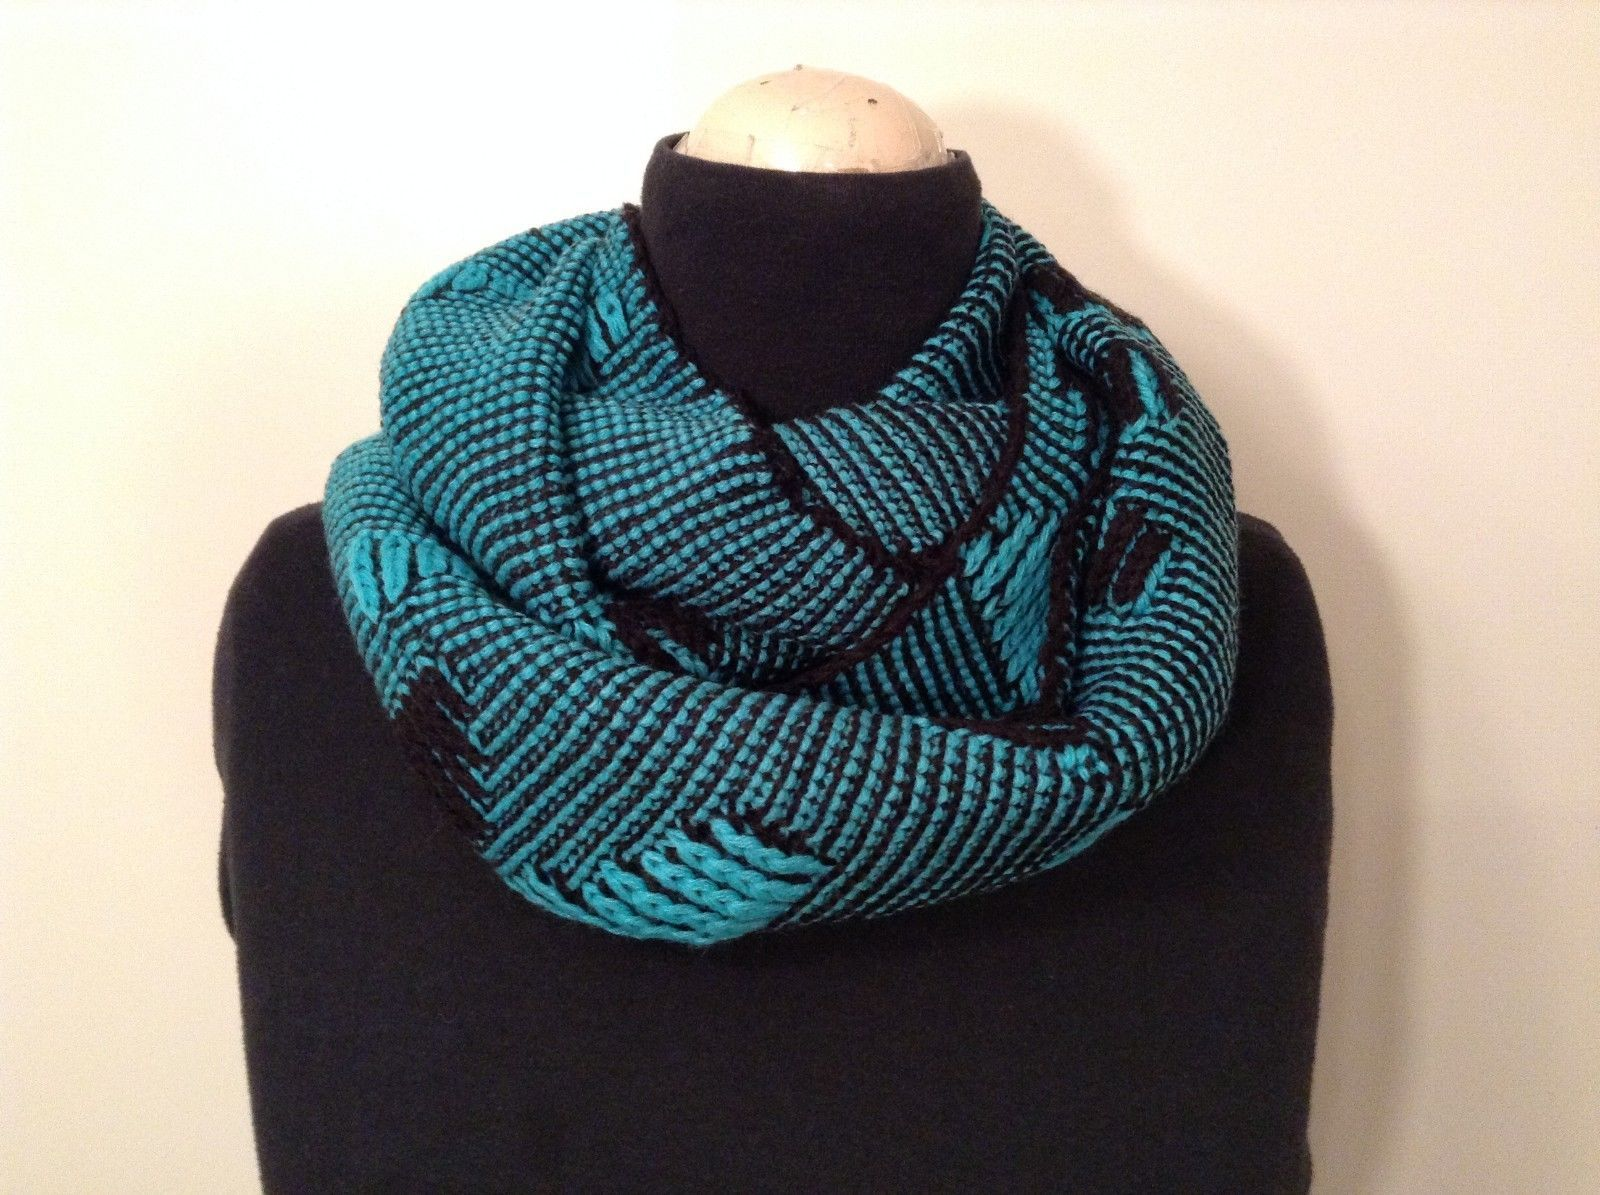 Black and Turquoise Infinity scarf warm fashion accent